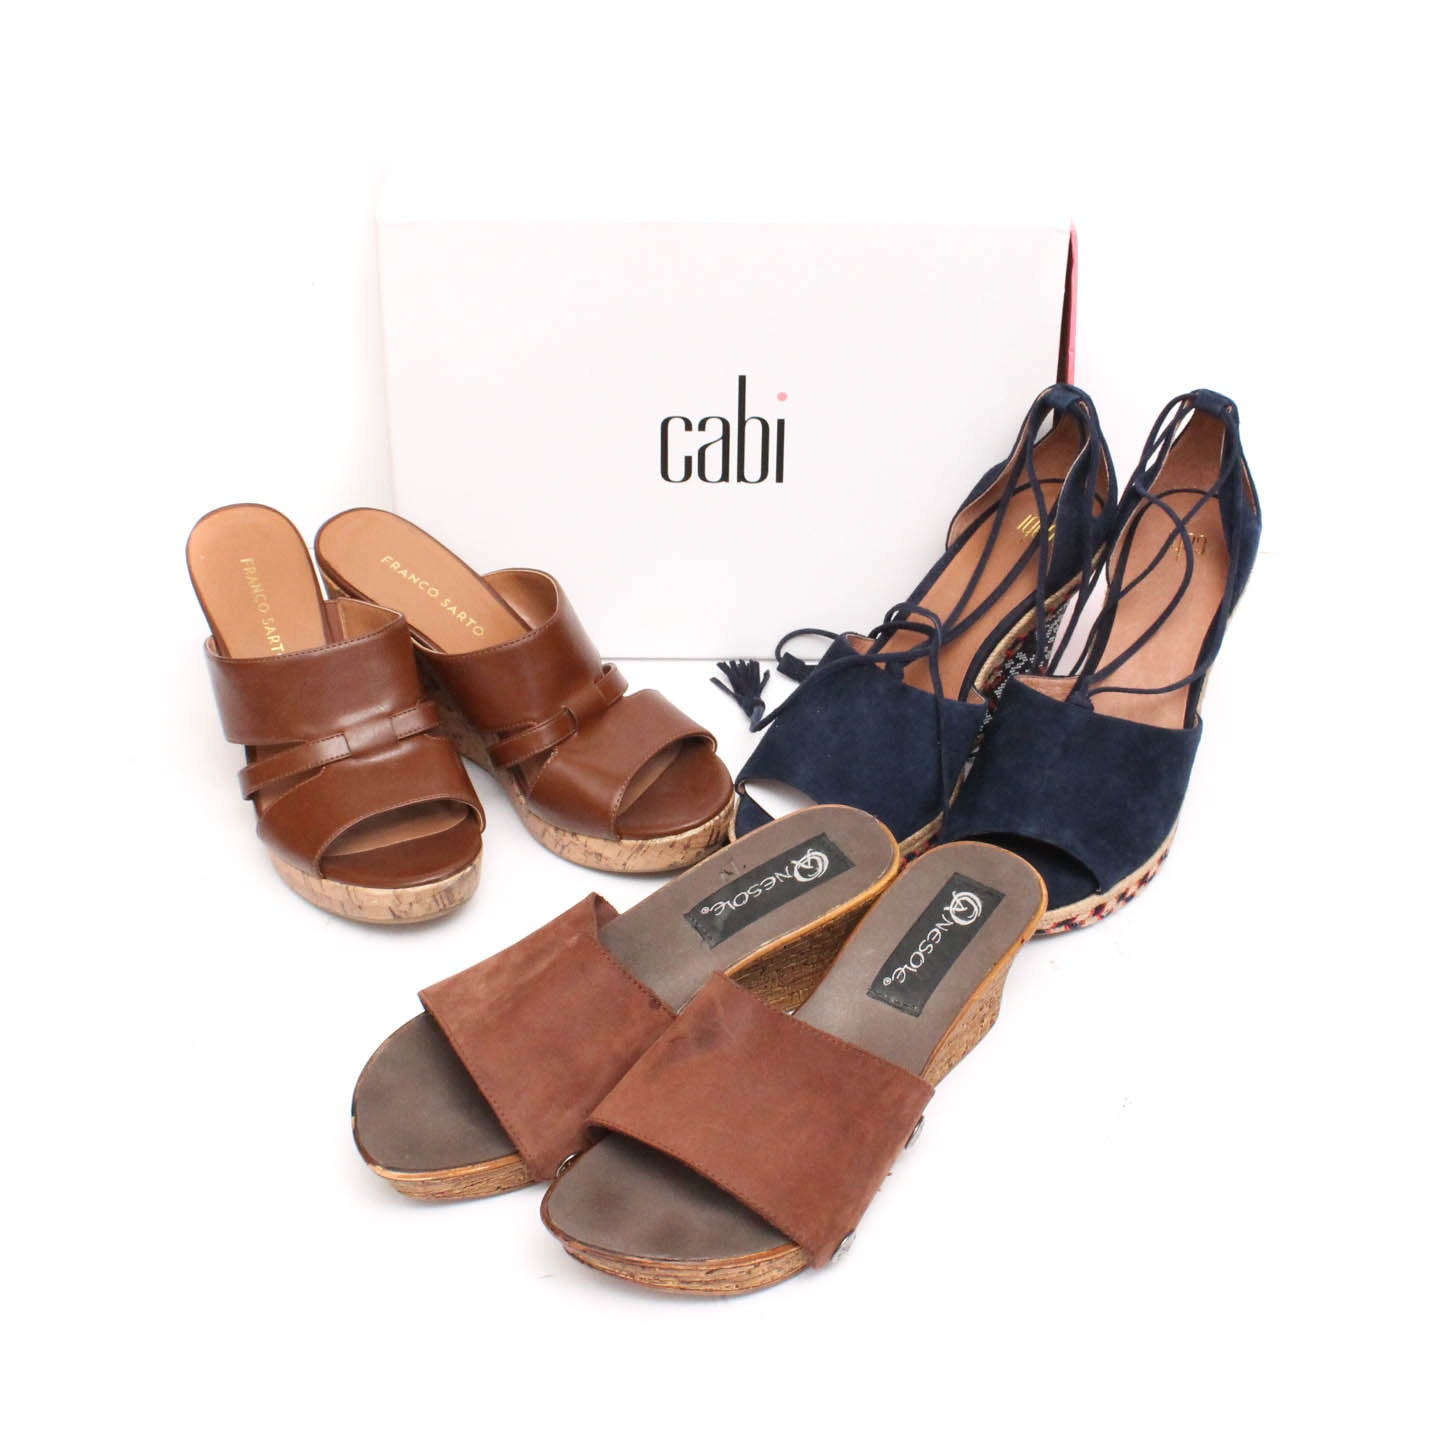 Group of Leather and Suede Wedges Featuring Franco Sarto and Cabi